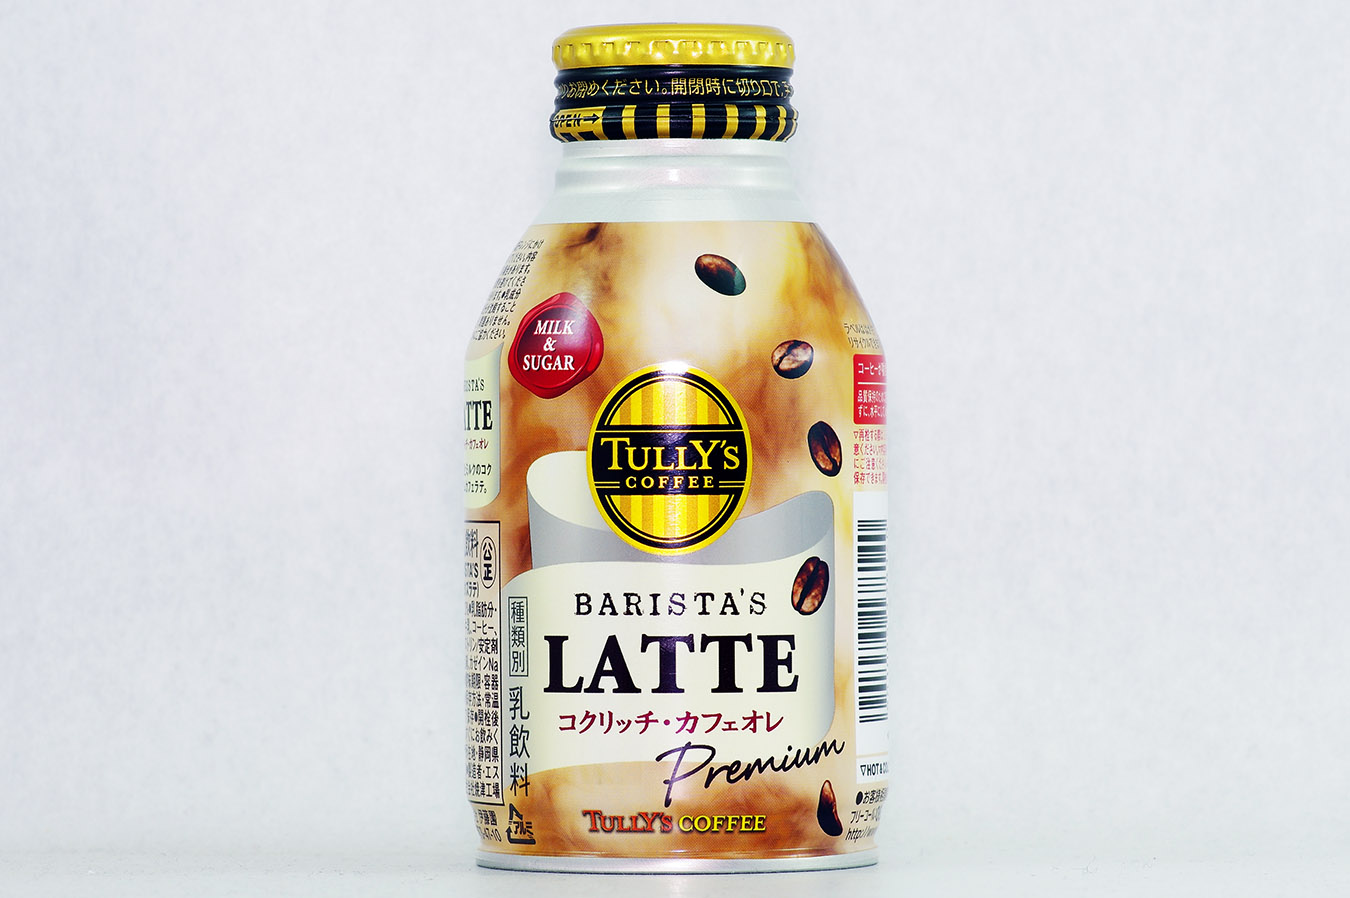 TULLY'S COFFEE BARISTA'S LATTE コクリッチ・カフェオレ